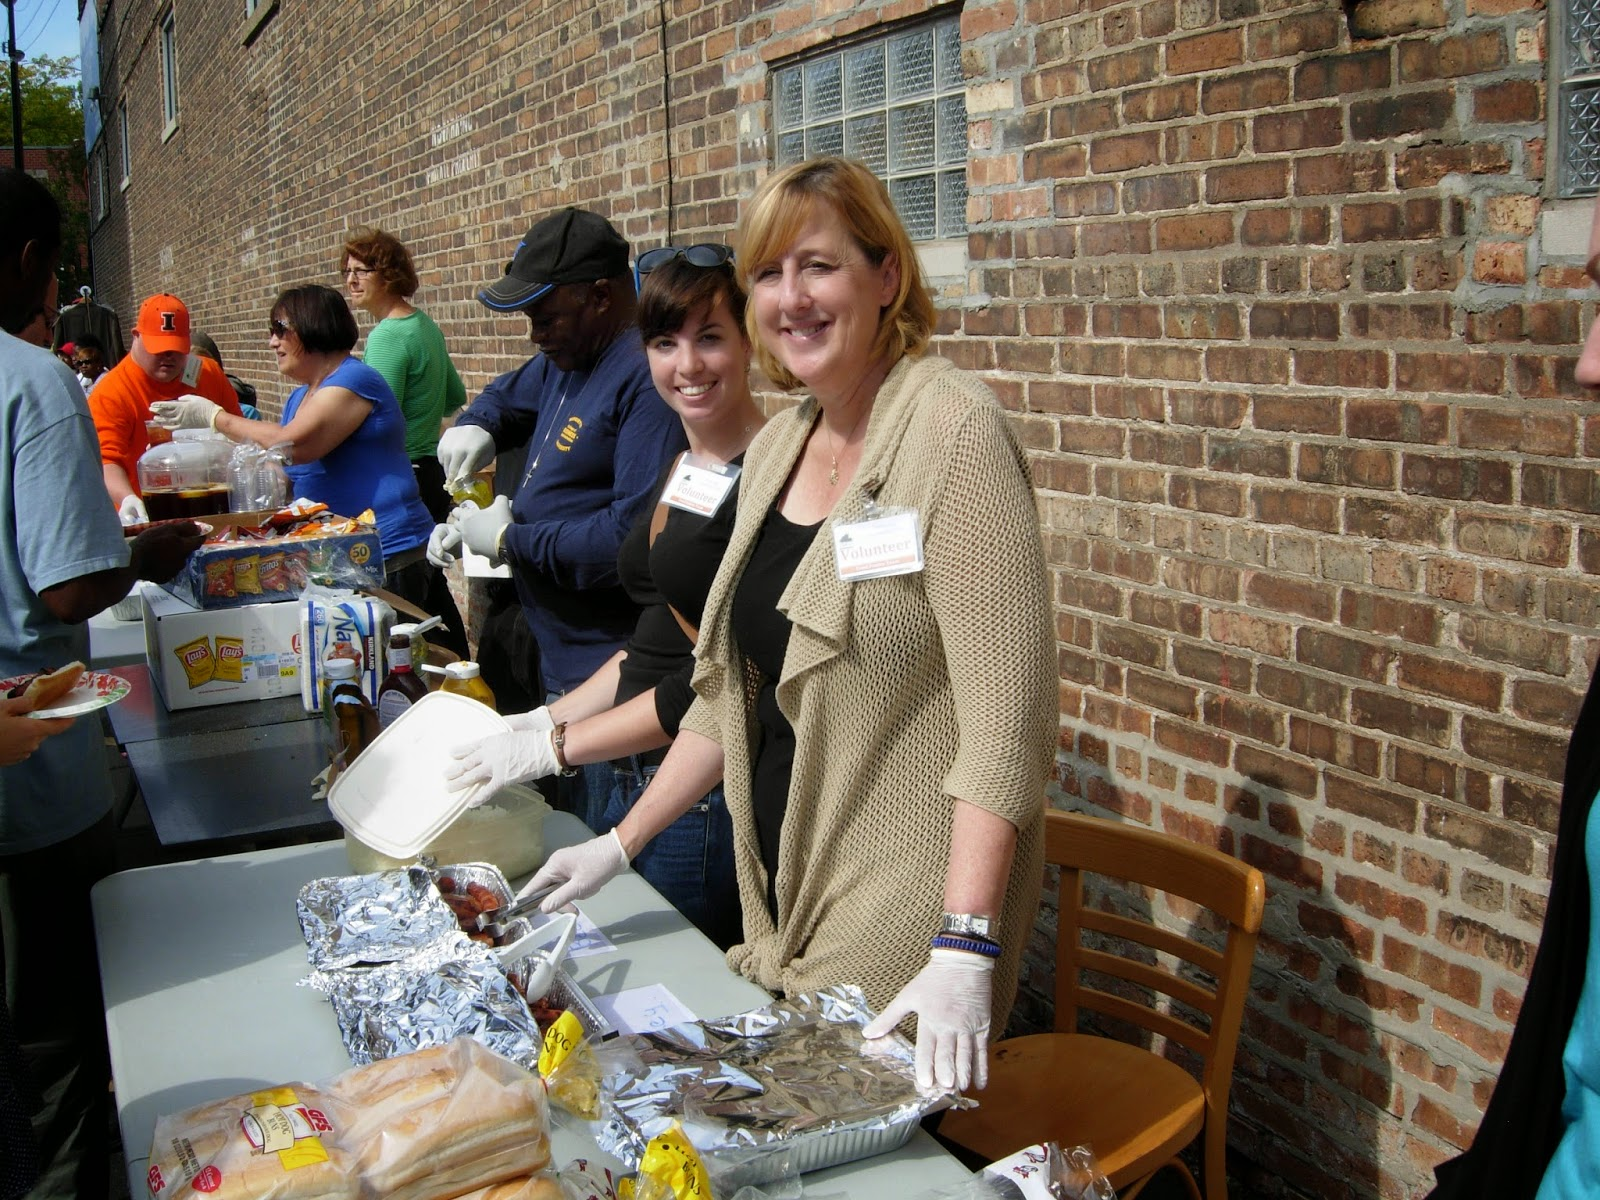 For more information on the food pantry, click on the about tab at the top of the page.